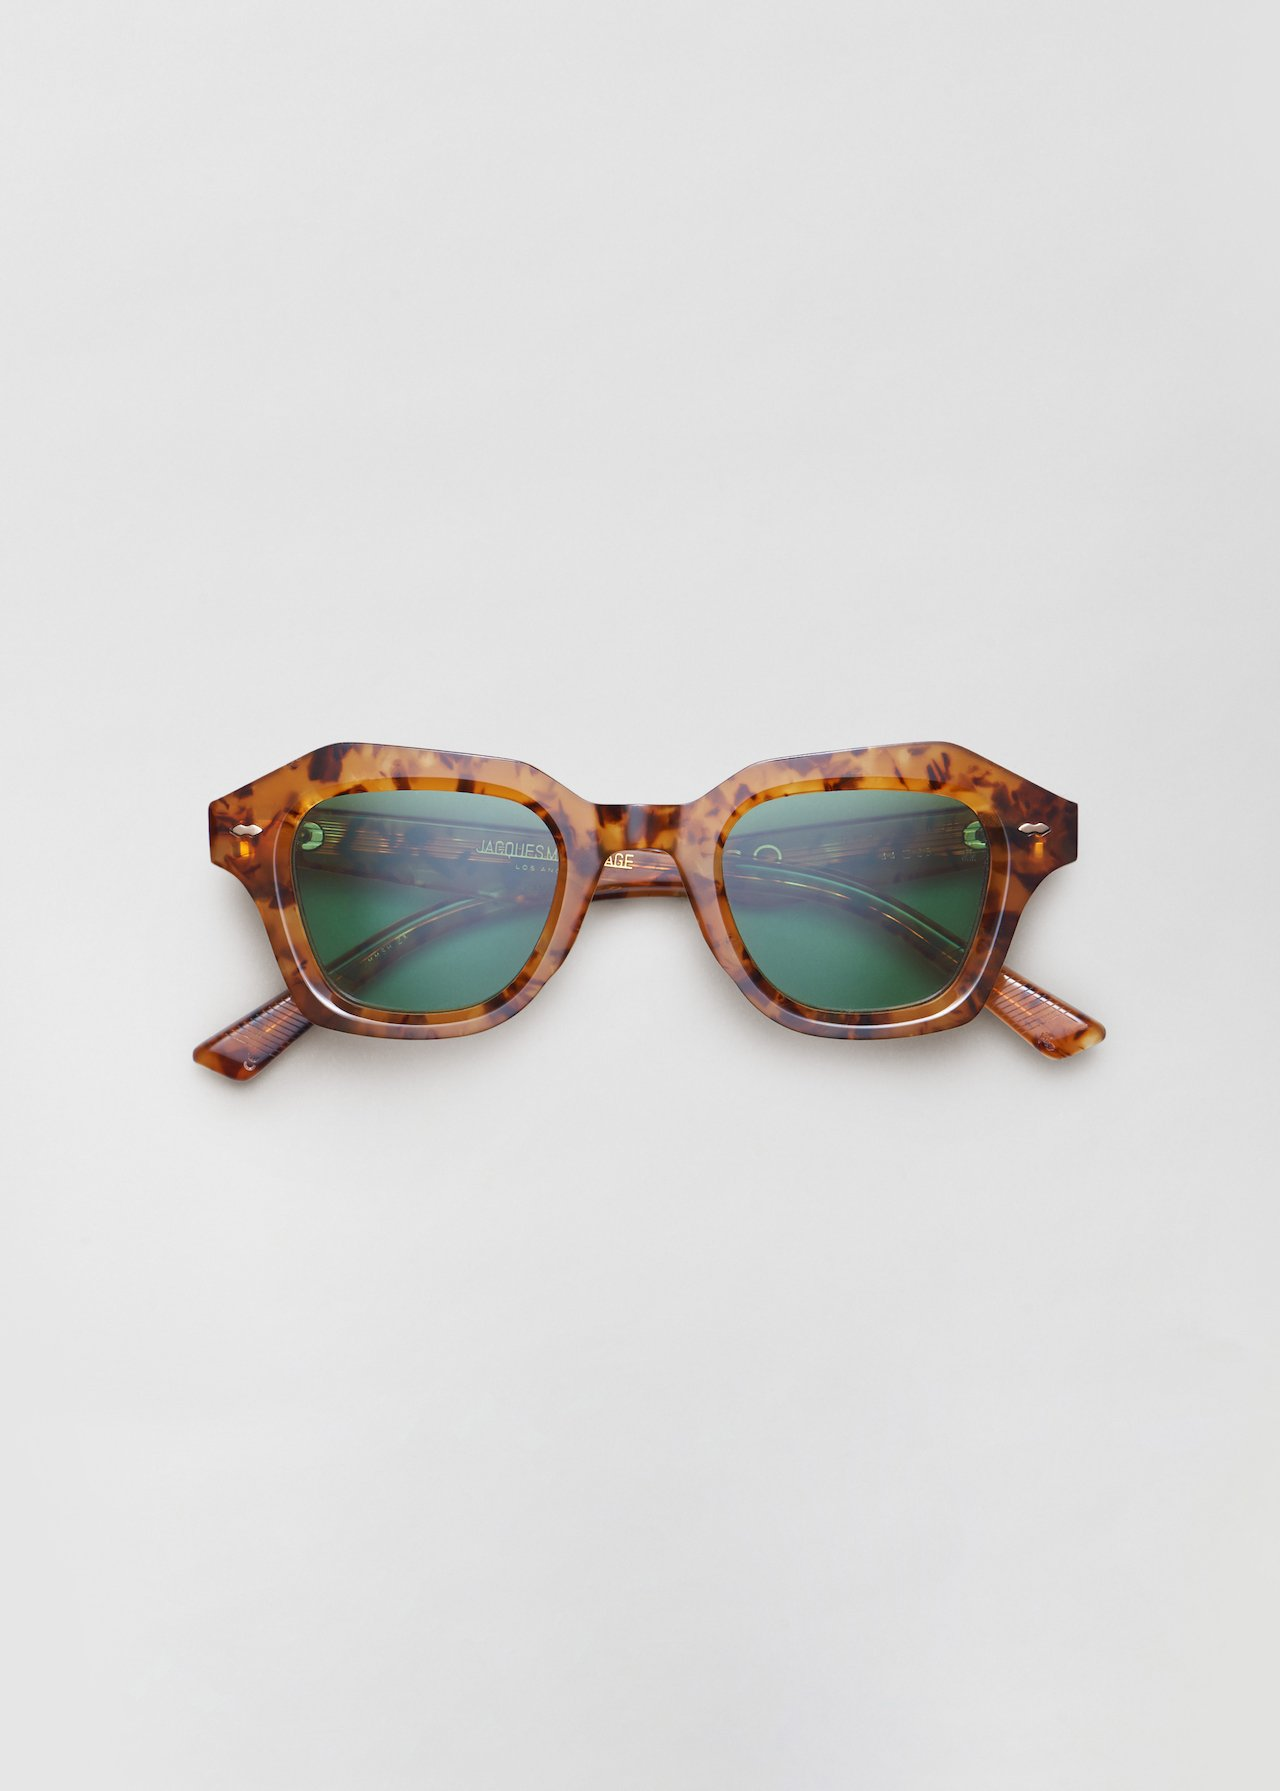 Schindler Sunglasses in Lava in Vintage Tortoise by Co Collections